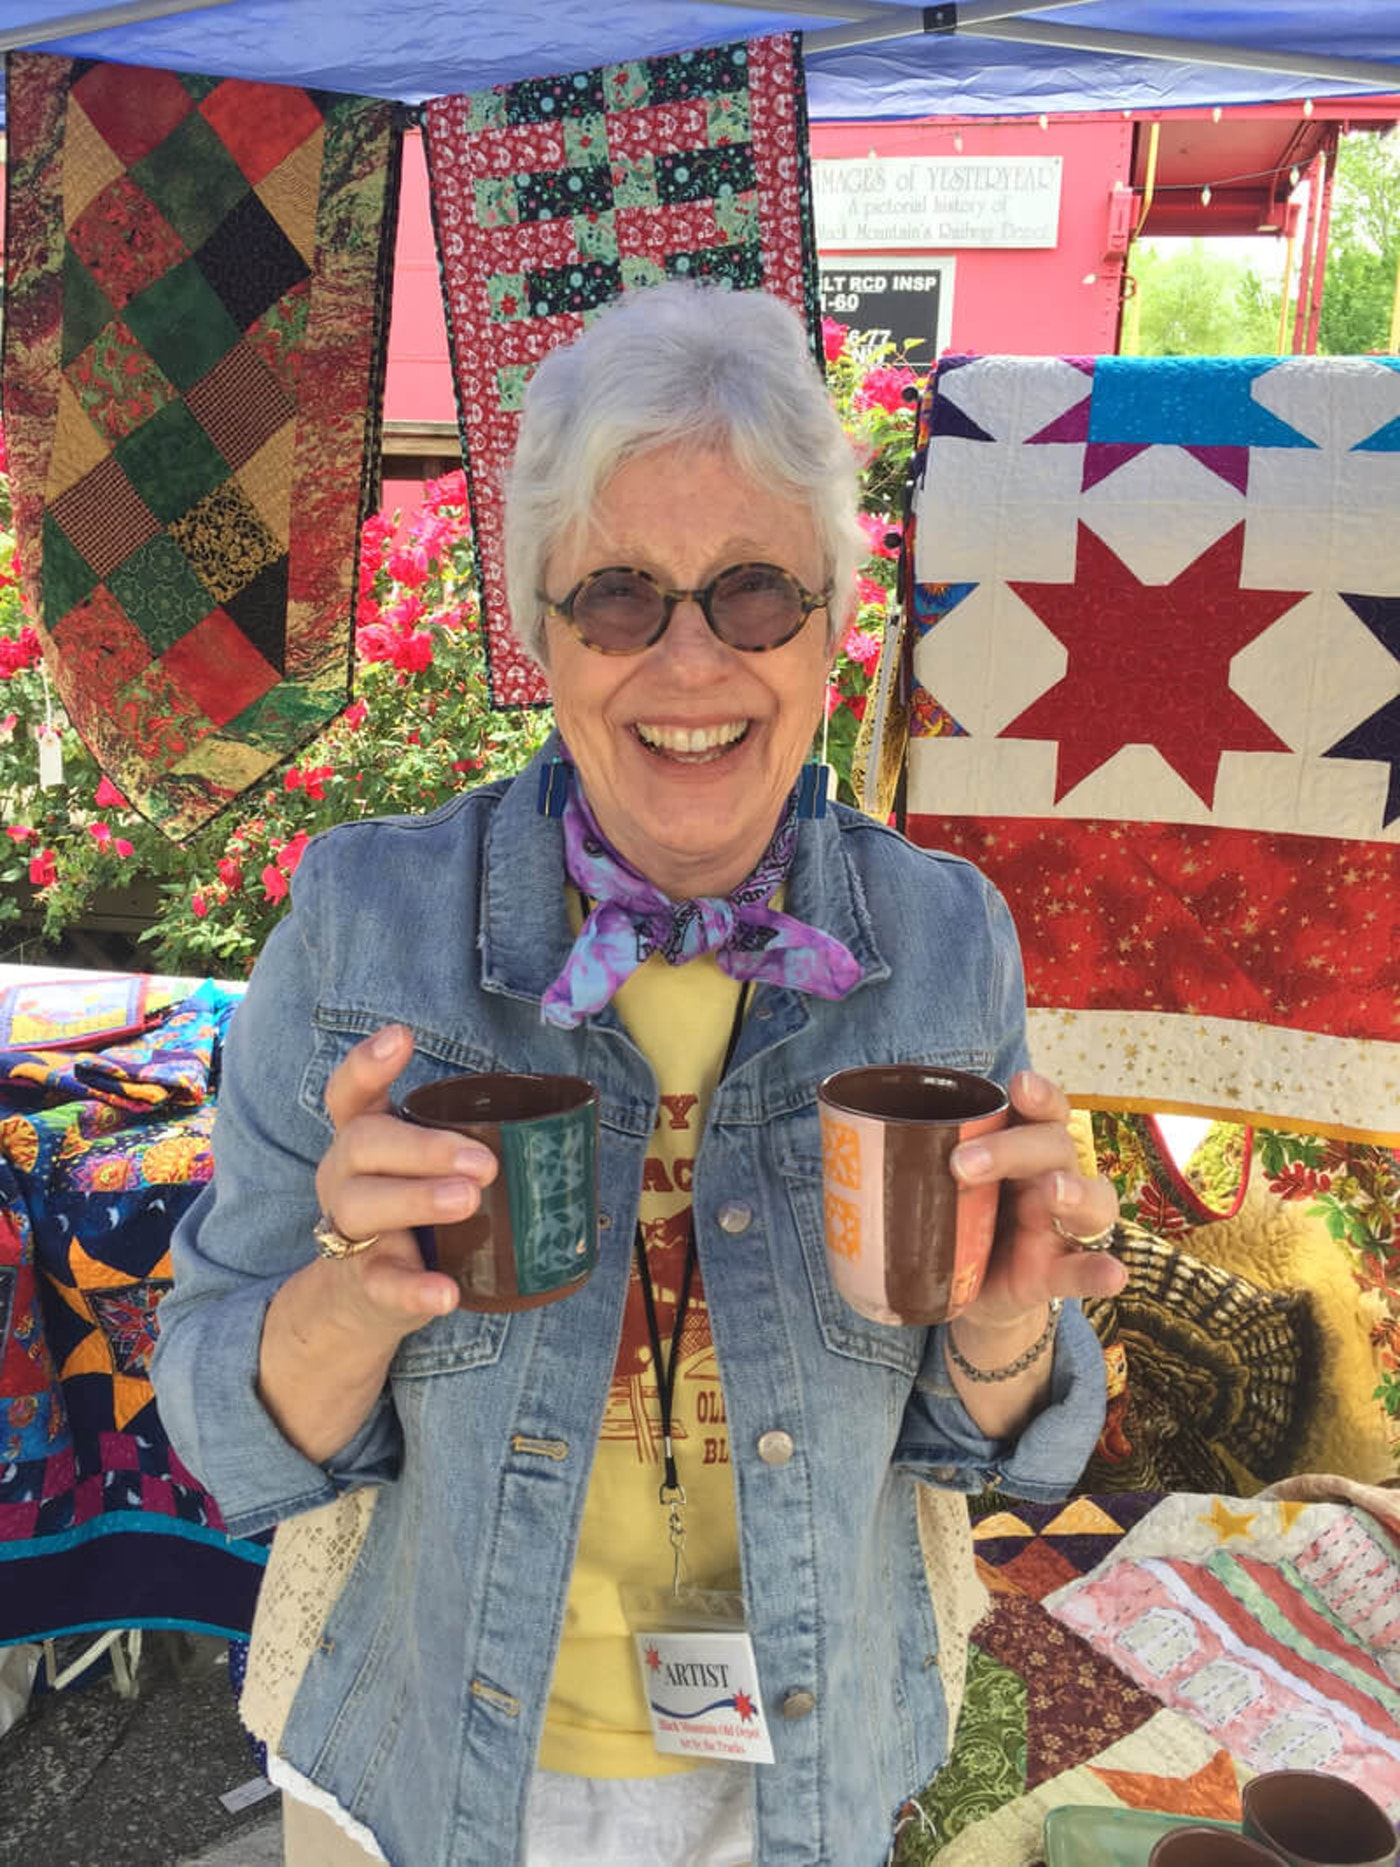 Grey[haired person in sunglasses and denim jacket stands before a quilt display holding up two mugs in welcome.